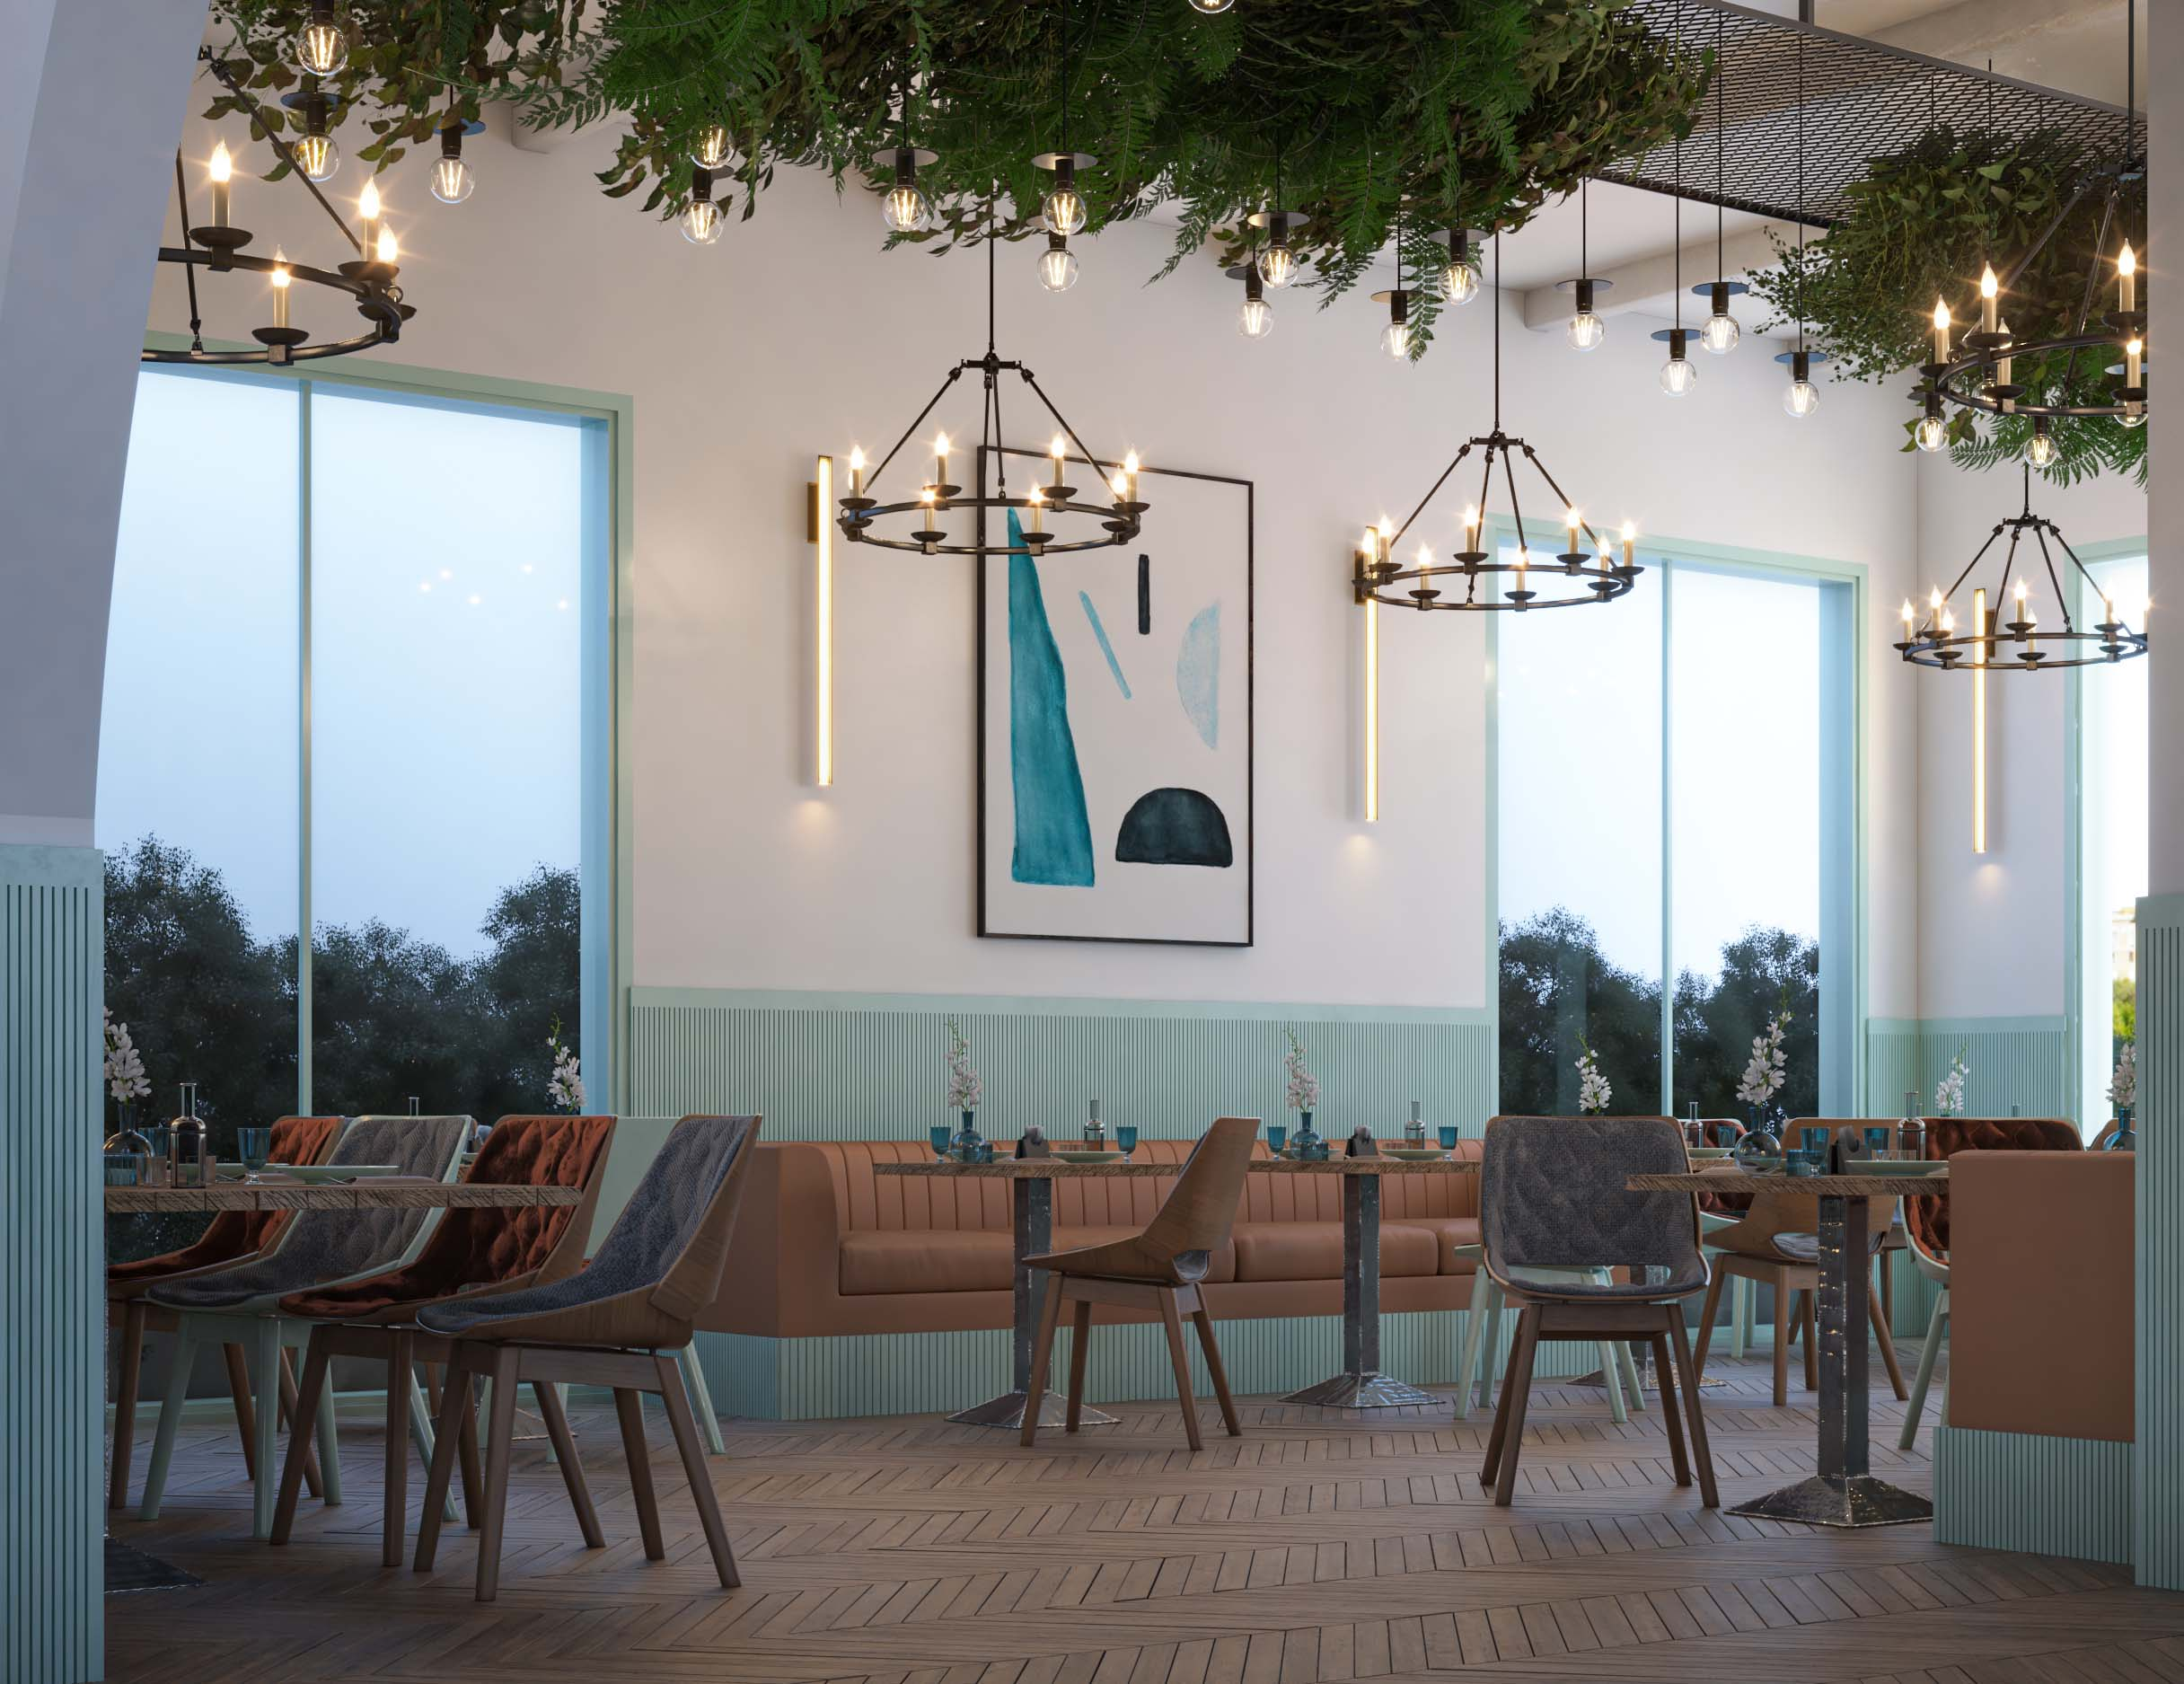 PAINTING - WALLS DECORATION - TURQUOISE